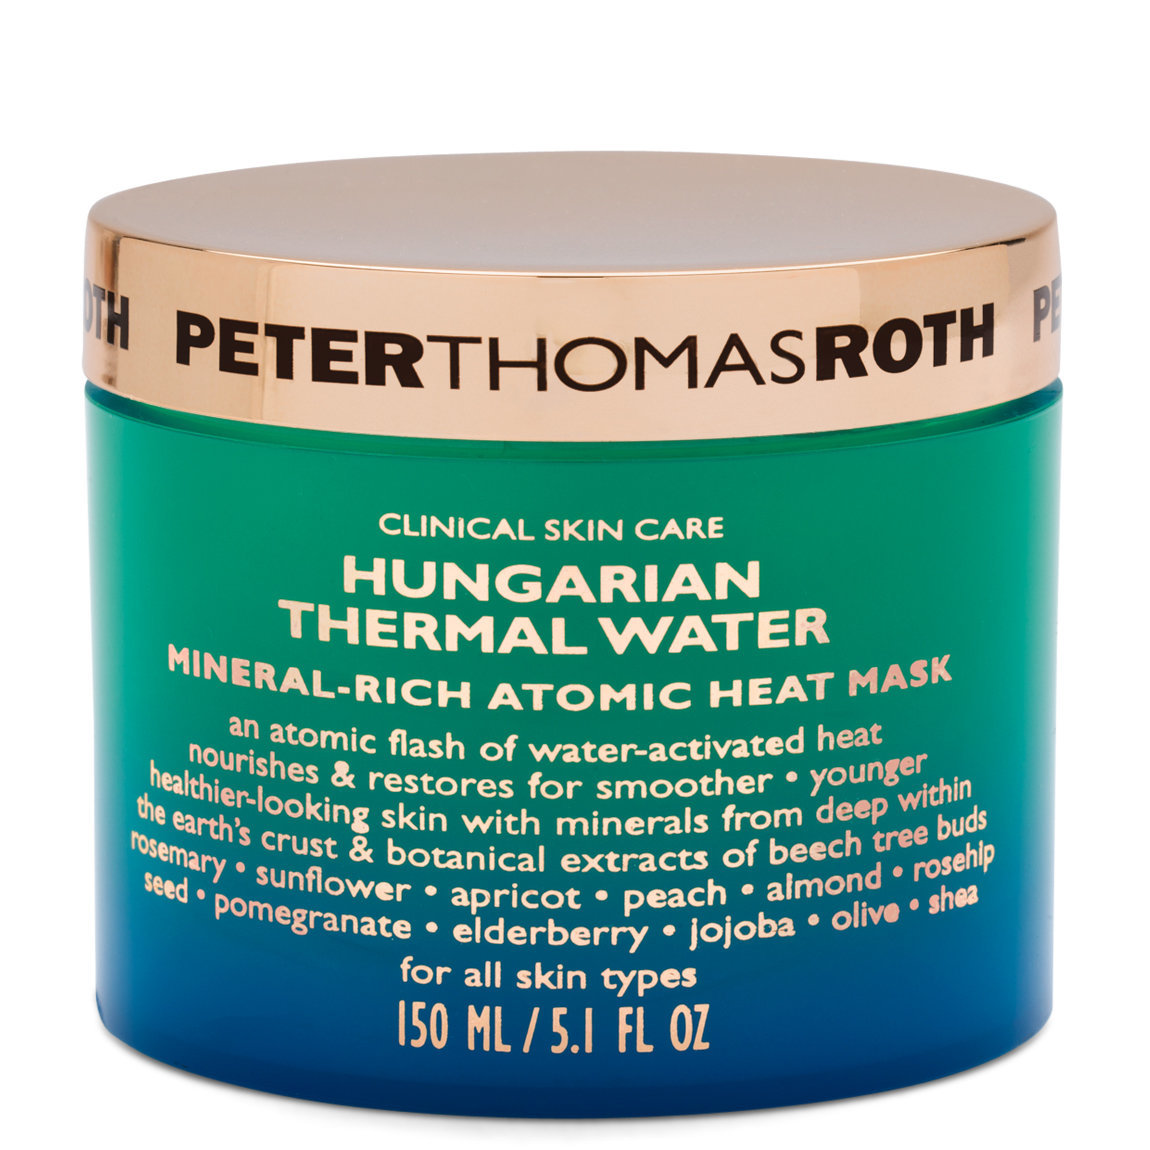 Peter Thomas Roth Hungarian Thermal Water Mineral-Rich Atomic Heat Mask product swatch.